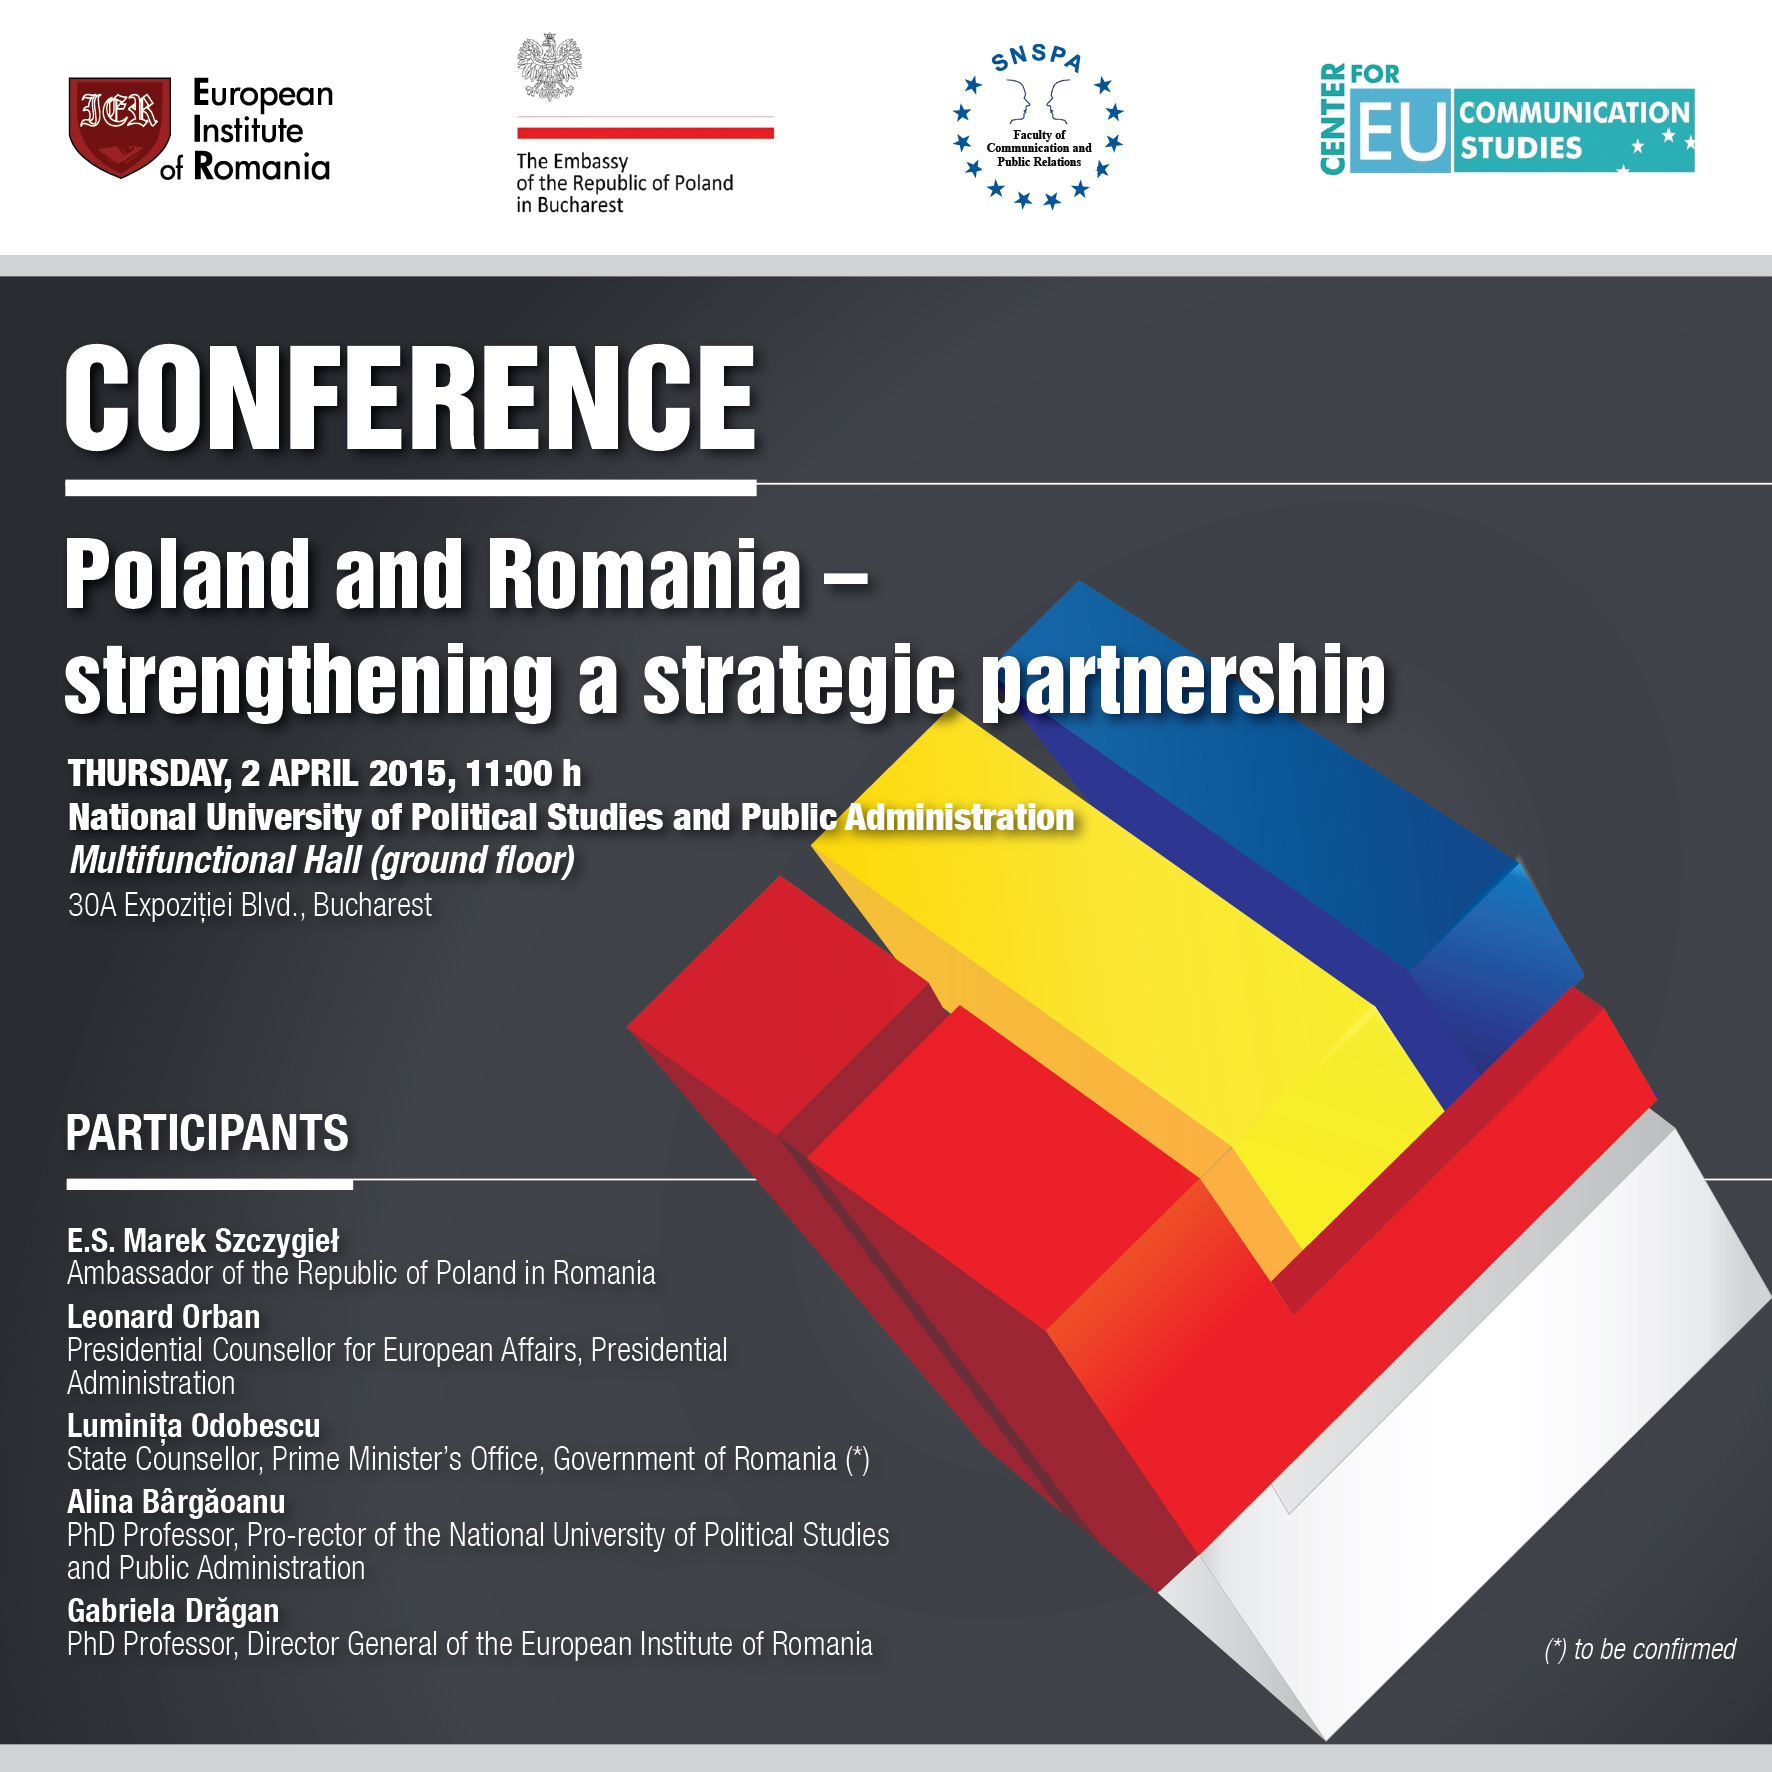 Poland and Romania - strengthening a strategic partnership